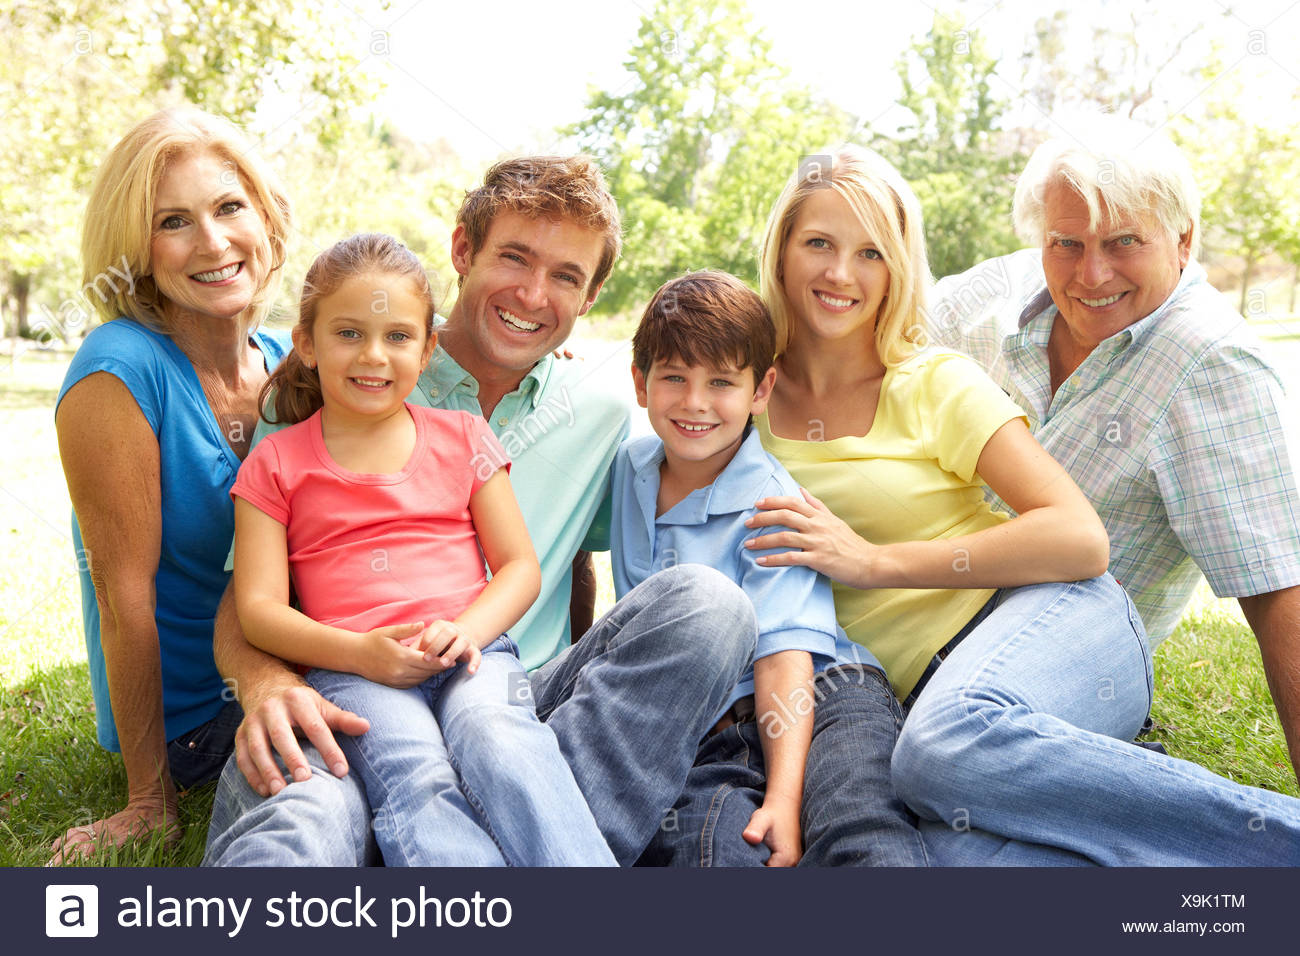 Extended Group Portrait Of Family Enjoying Day In Park - Stock Image